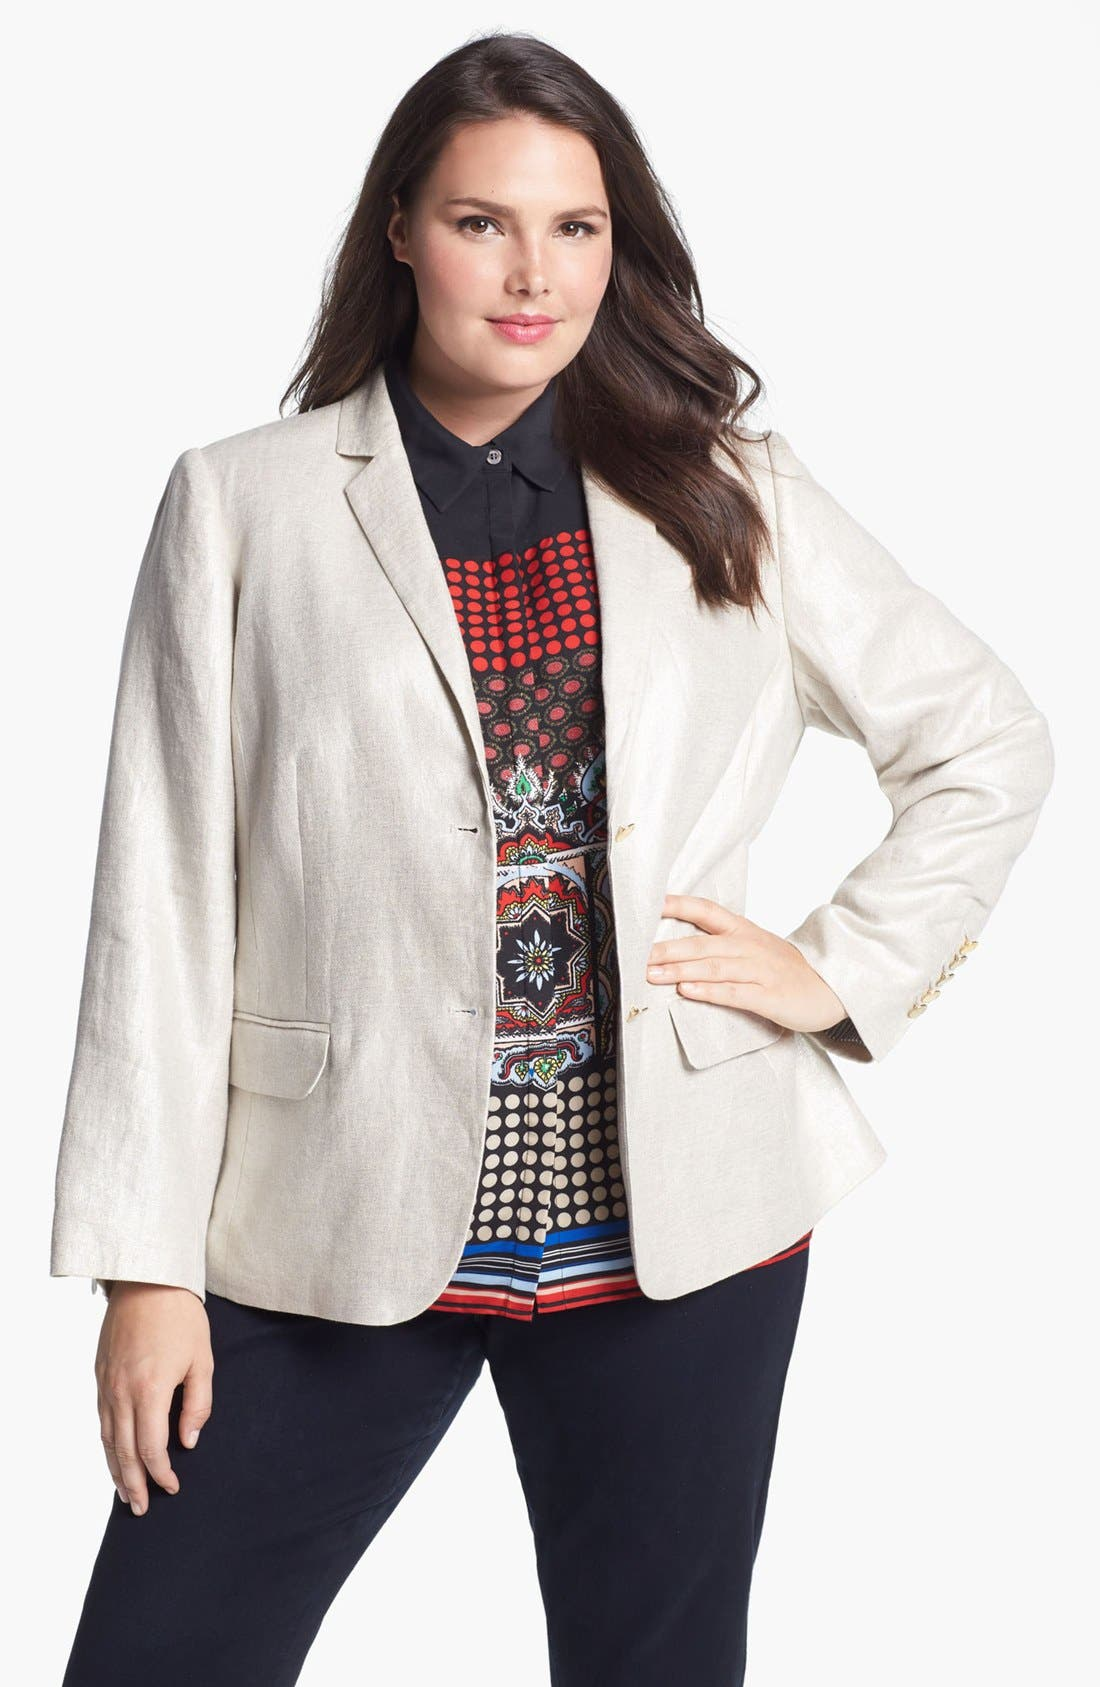 Alternate Image 1 Selected - Vince Camuto Linen Blazer (Plus Size)